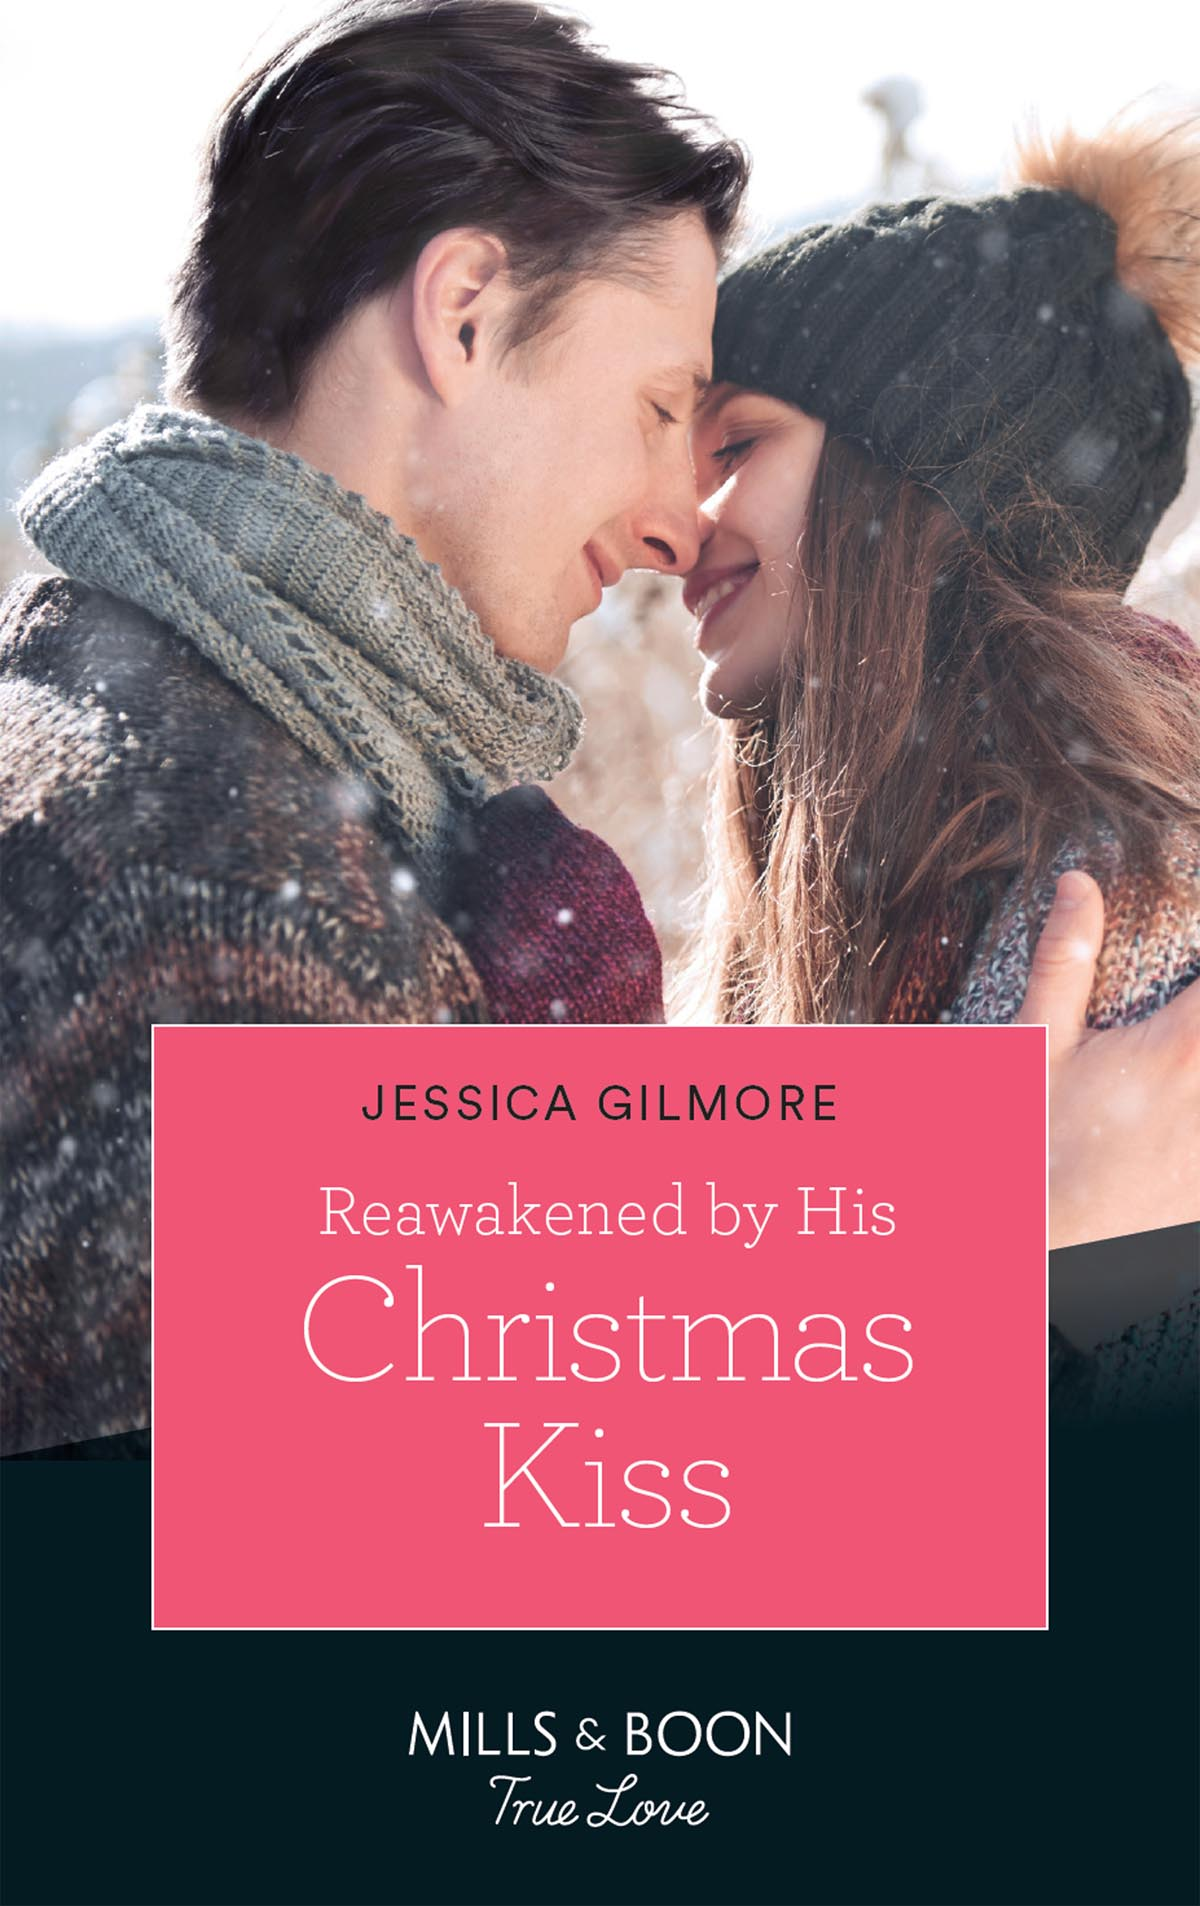 Jessica Gilmore Reawakened By His Christmas Kiss cover her face